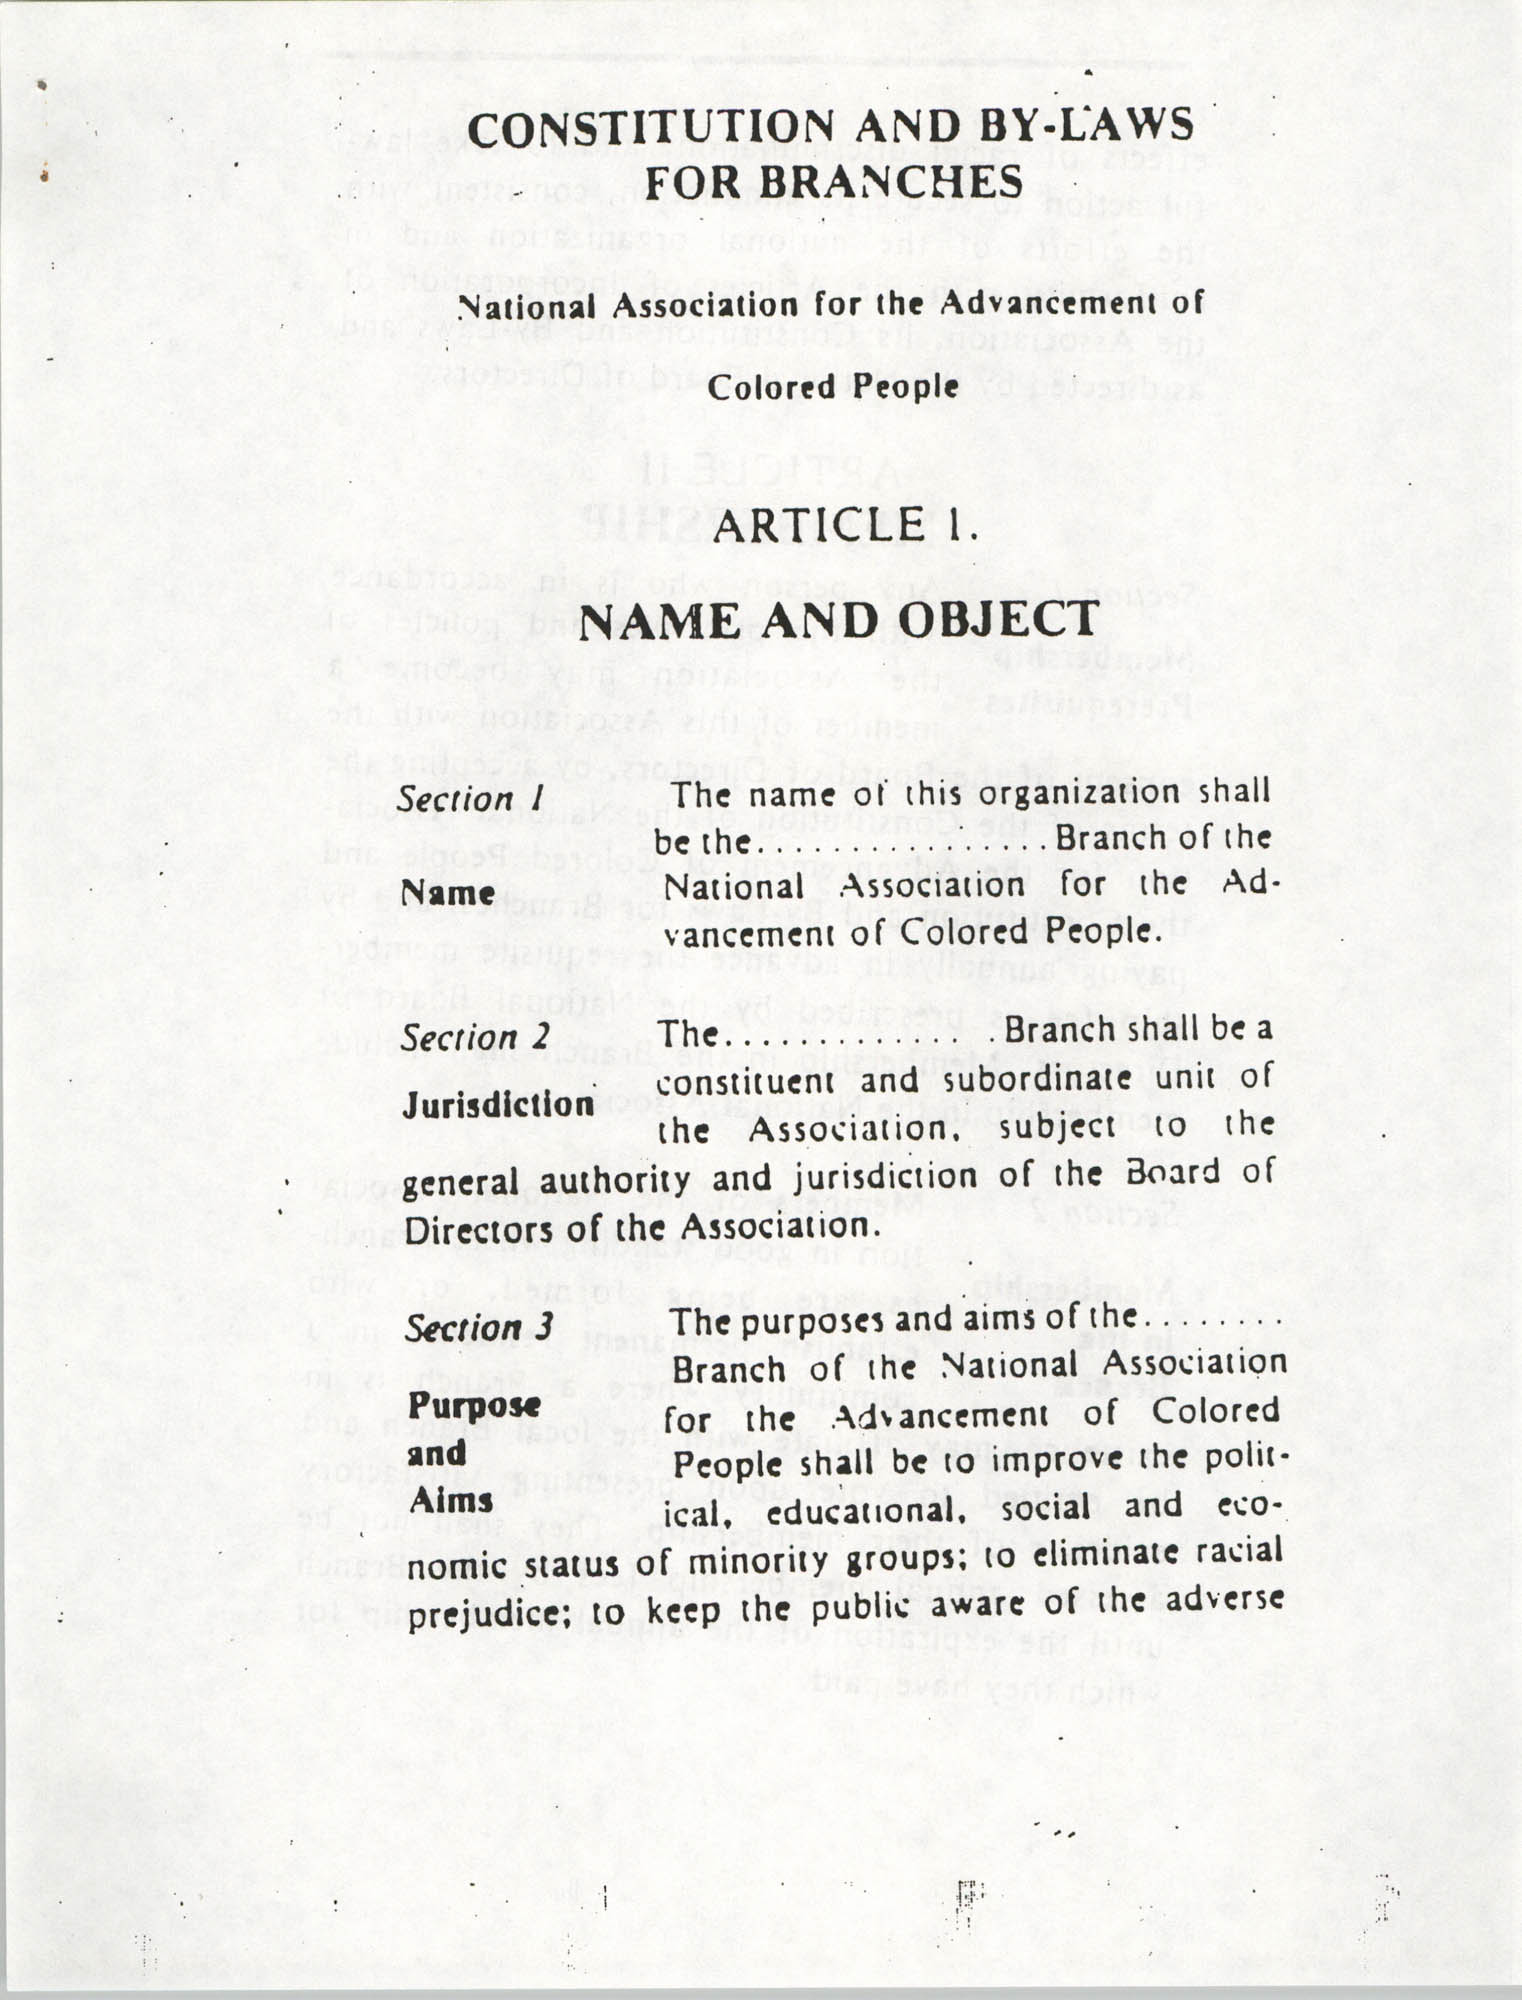 Constitution and By-Laws for Branches of the NAACP, March 1992, Page 3